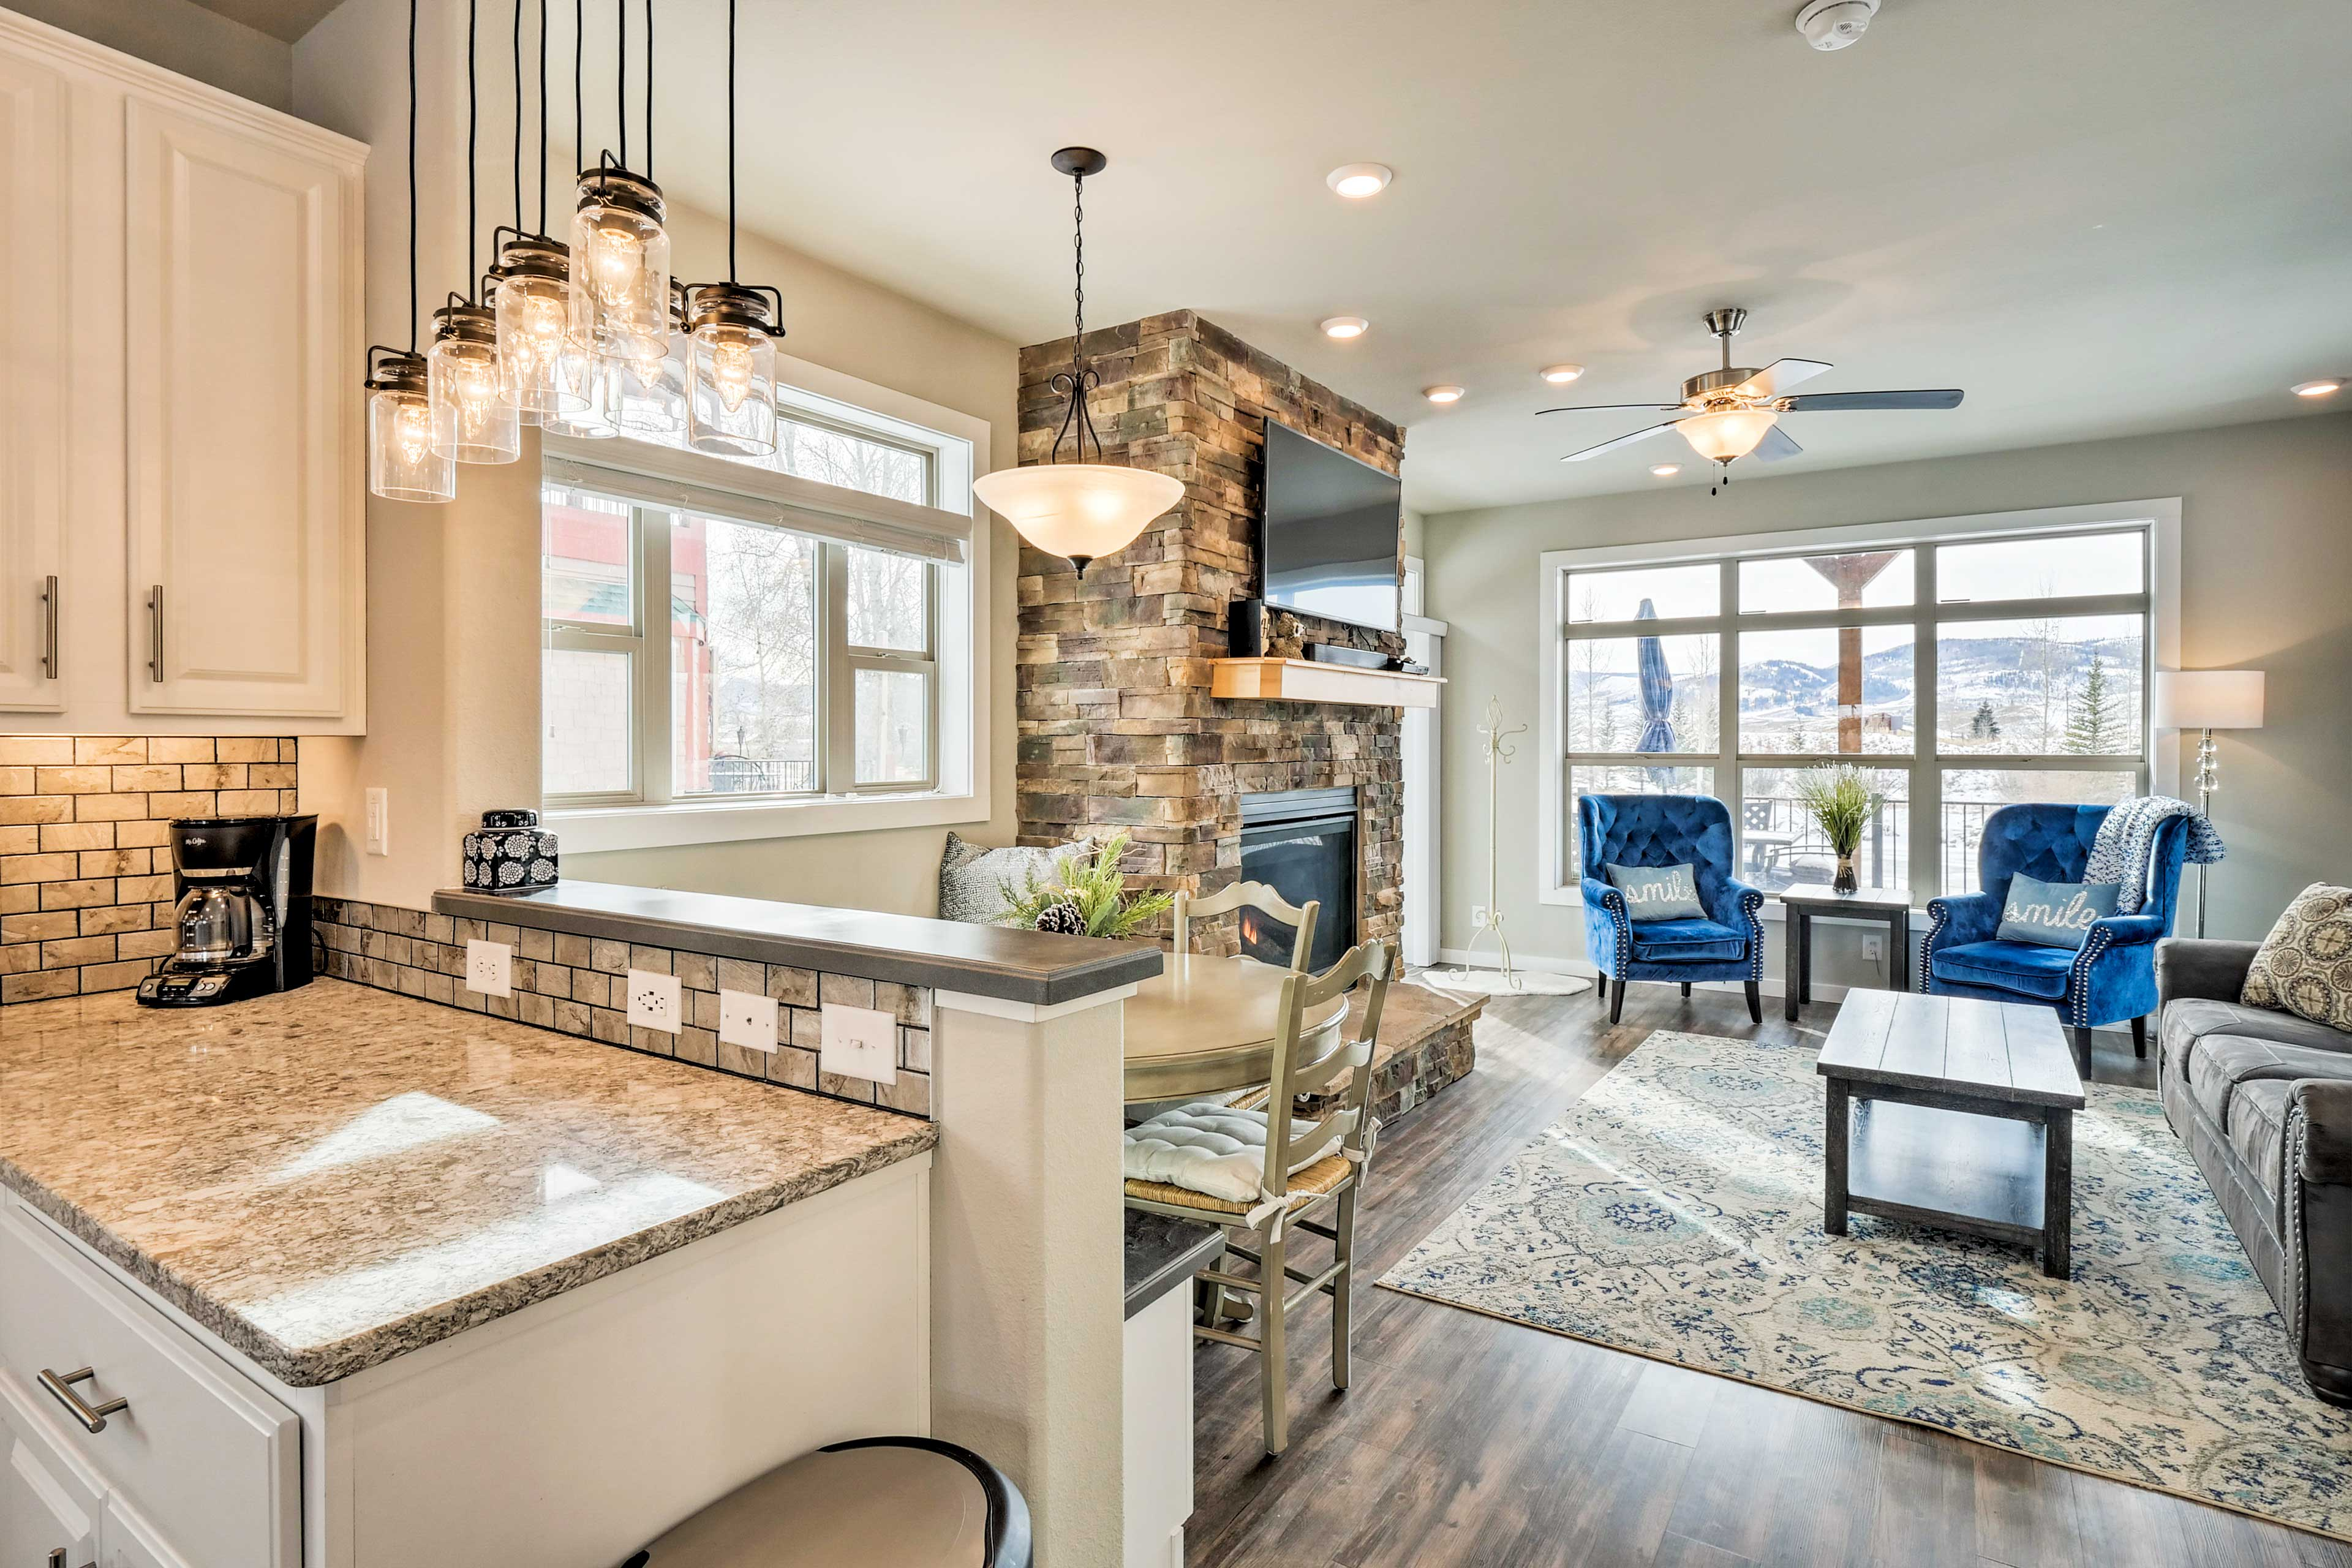 The open floor plan allows the home to feel comfortable and inviting.